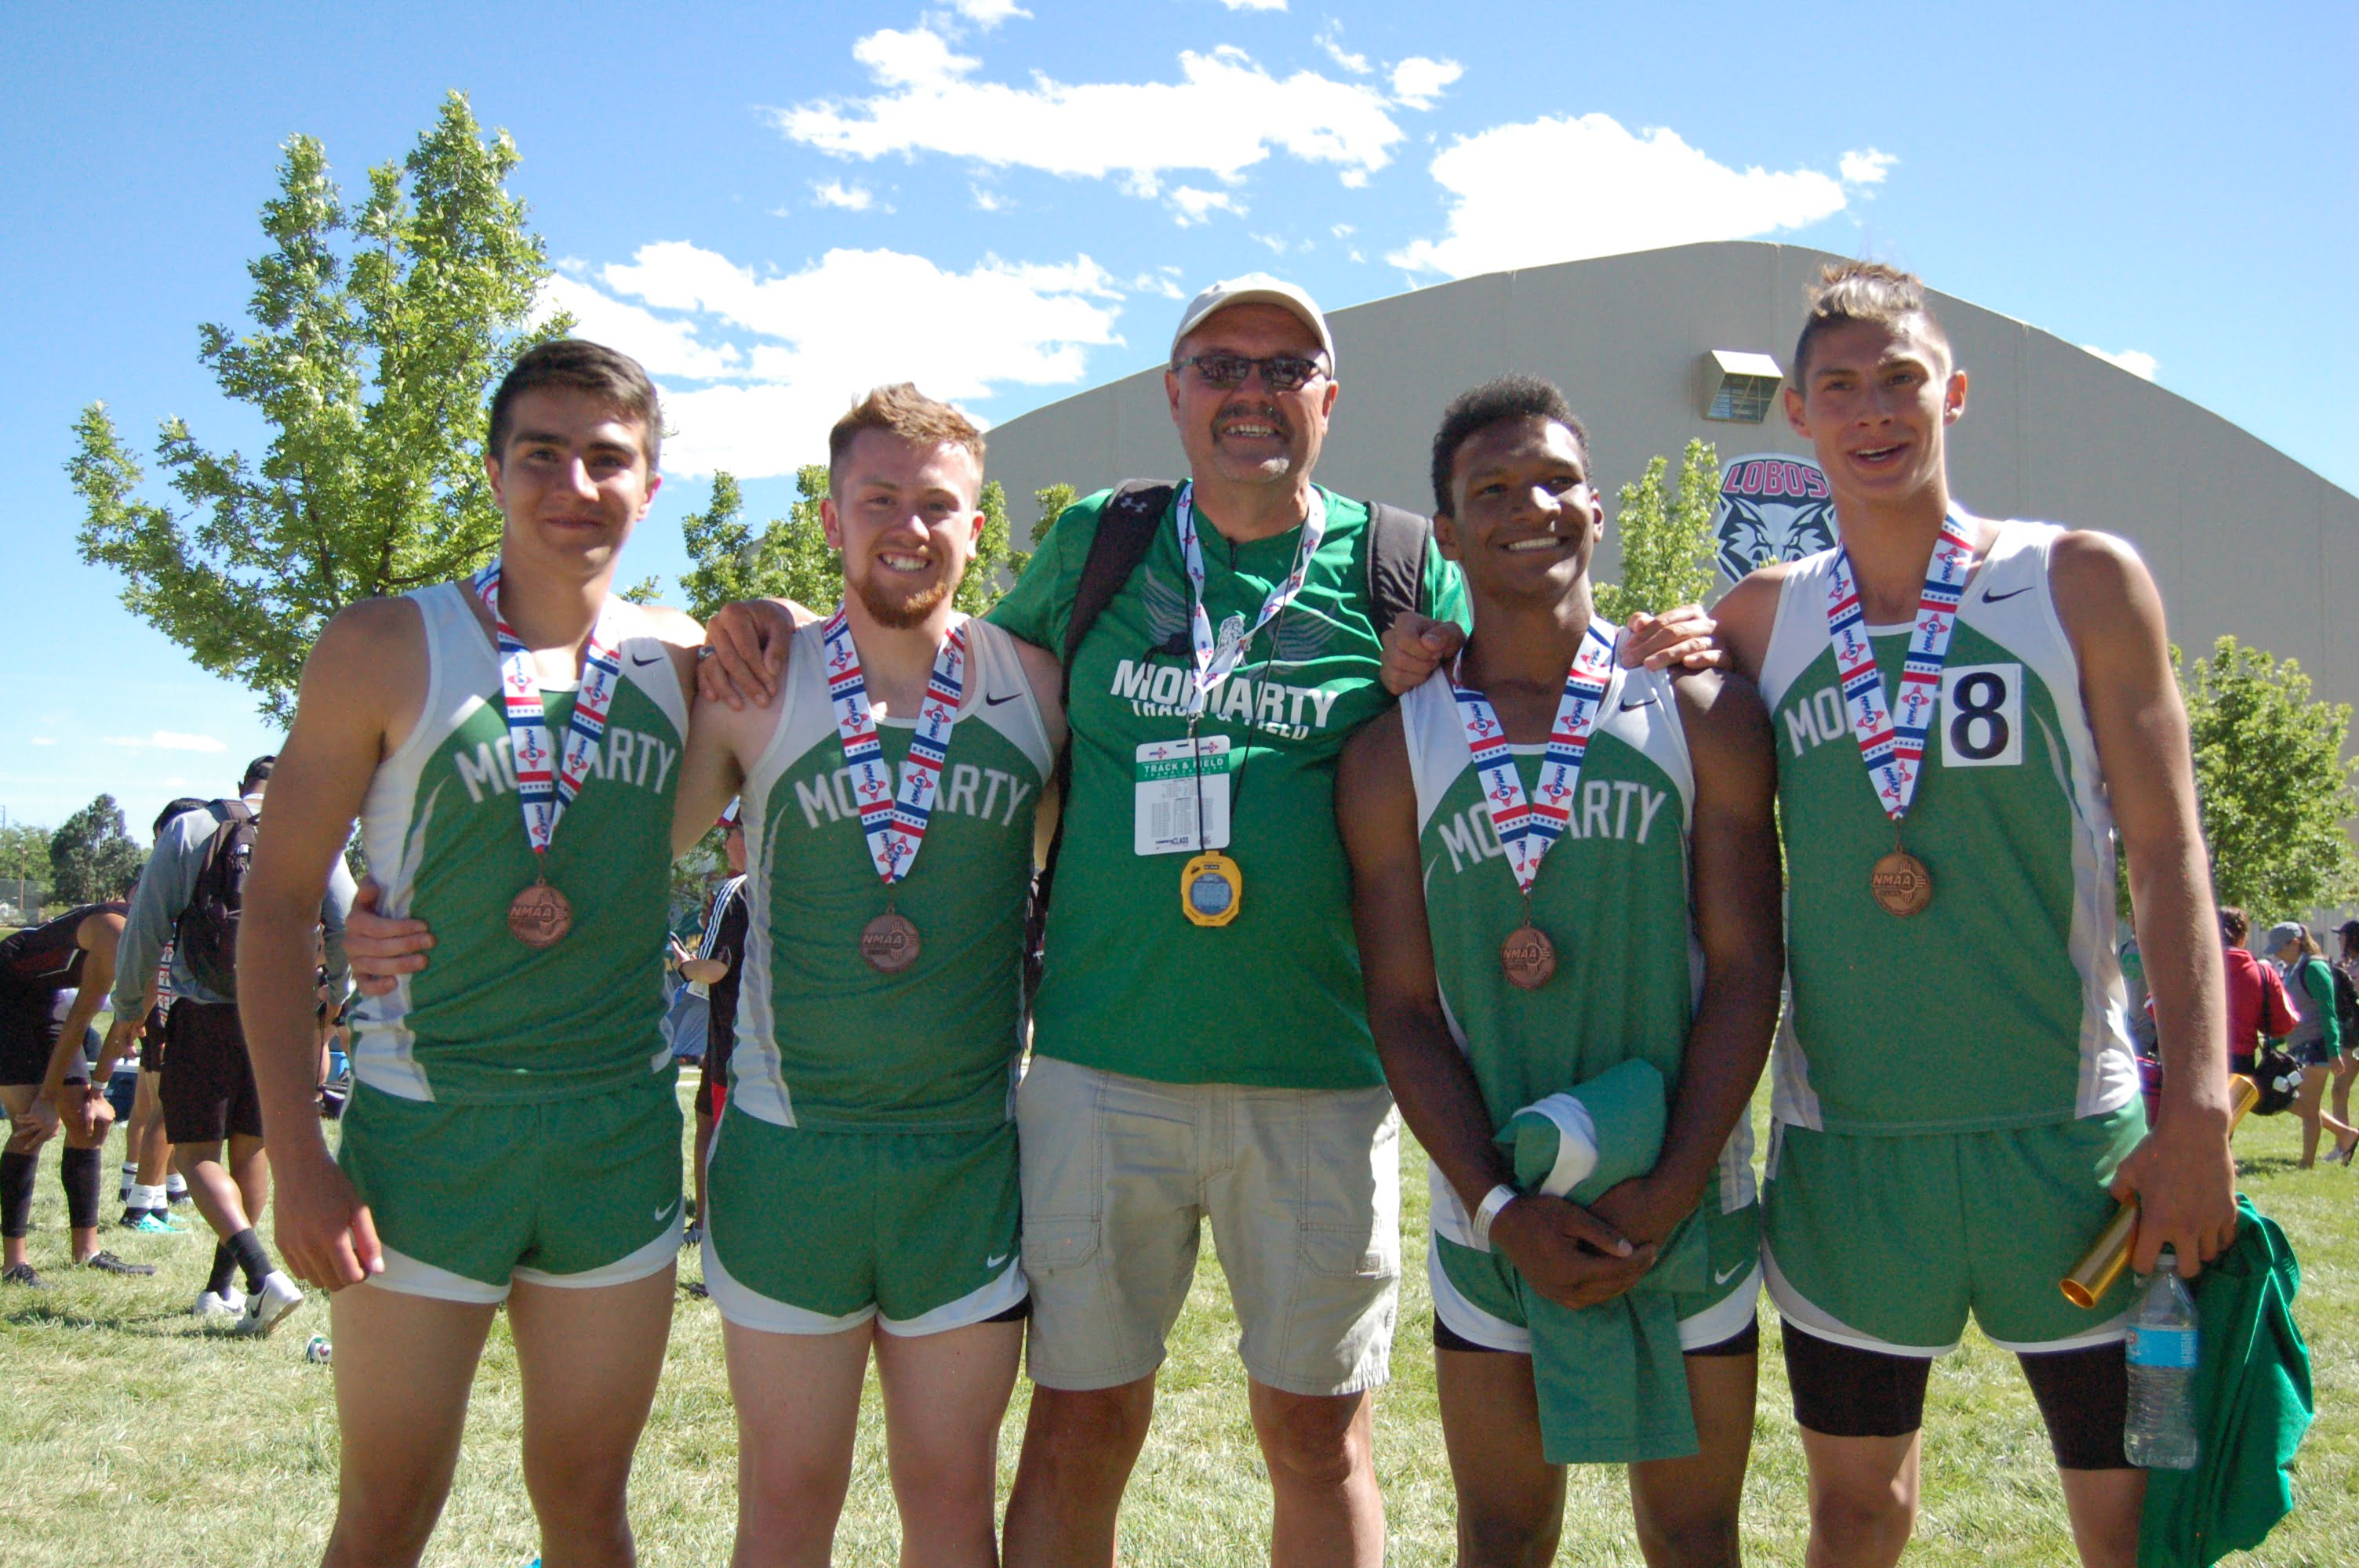 Moriarty High athletes shine at 4A-5A state track and field championships